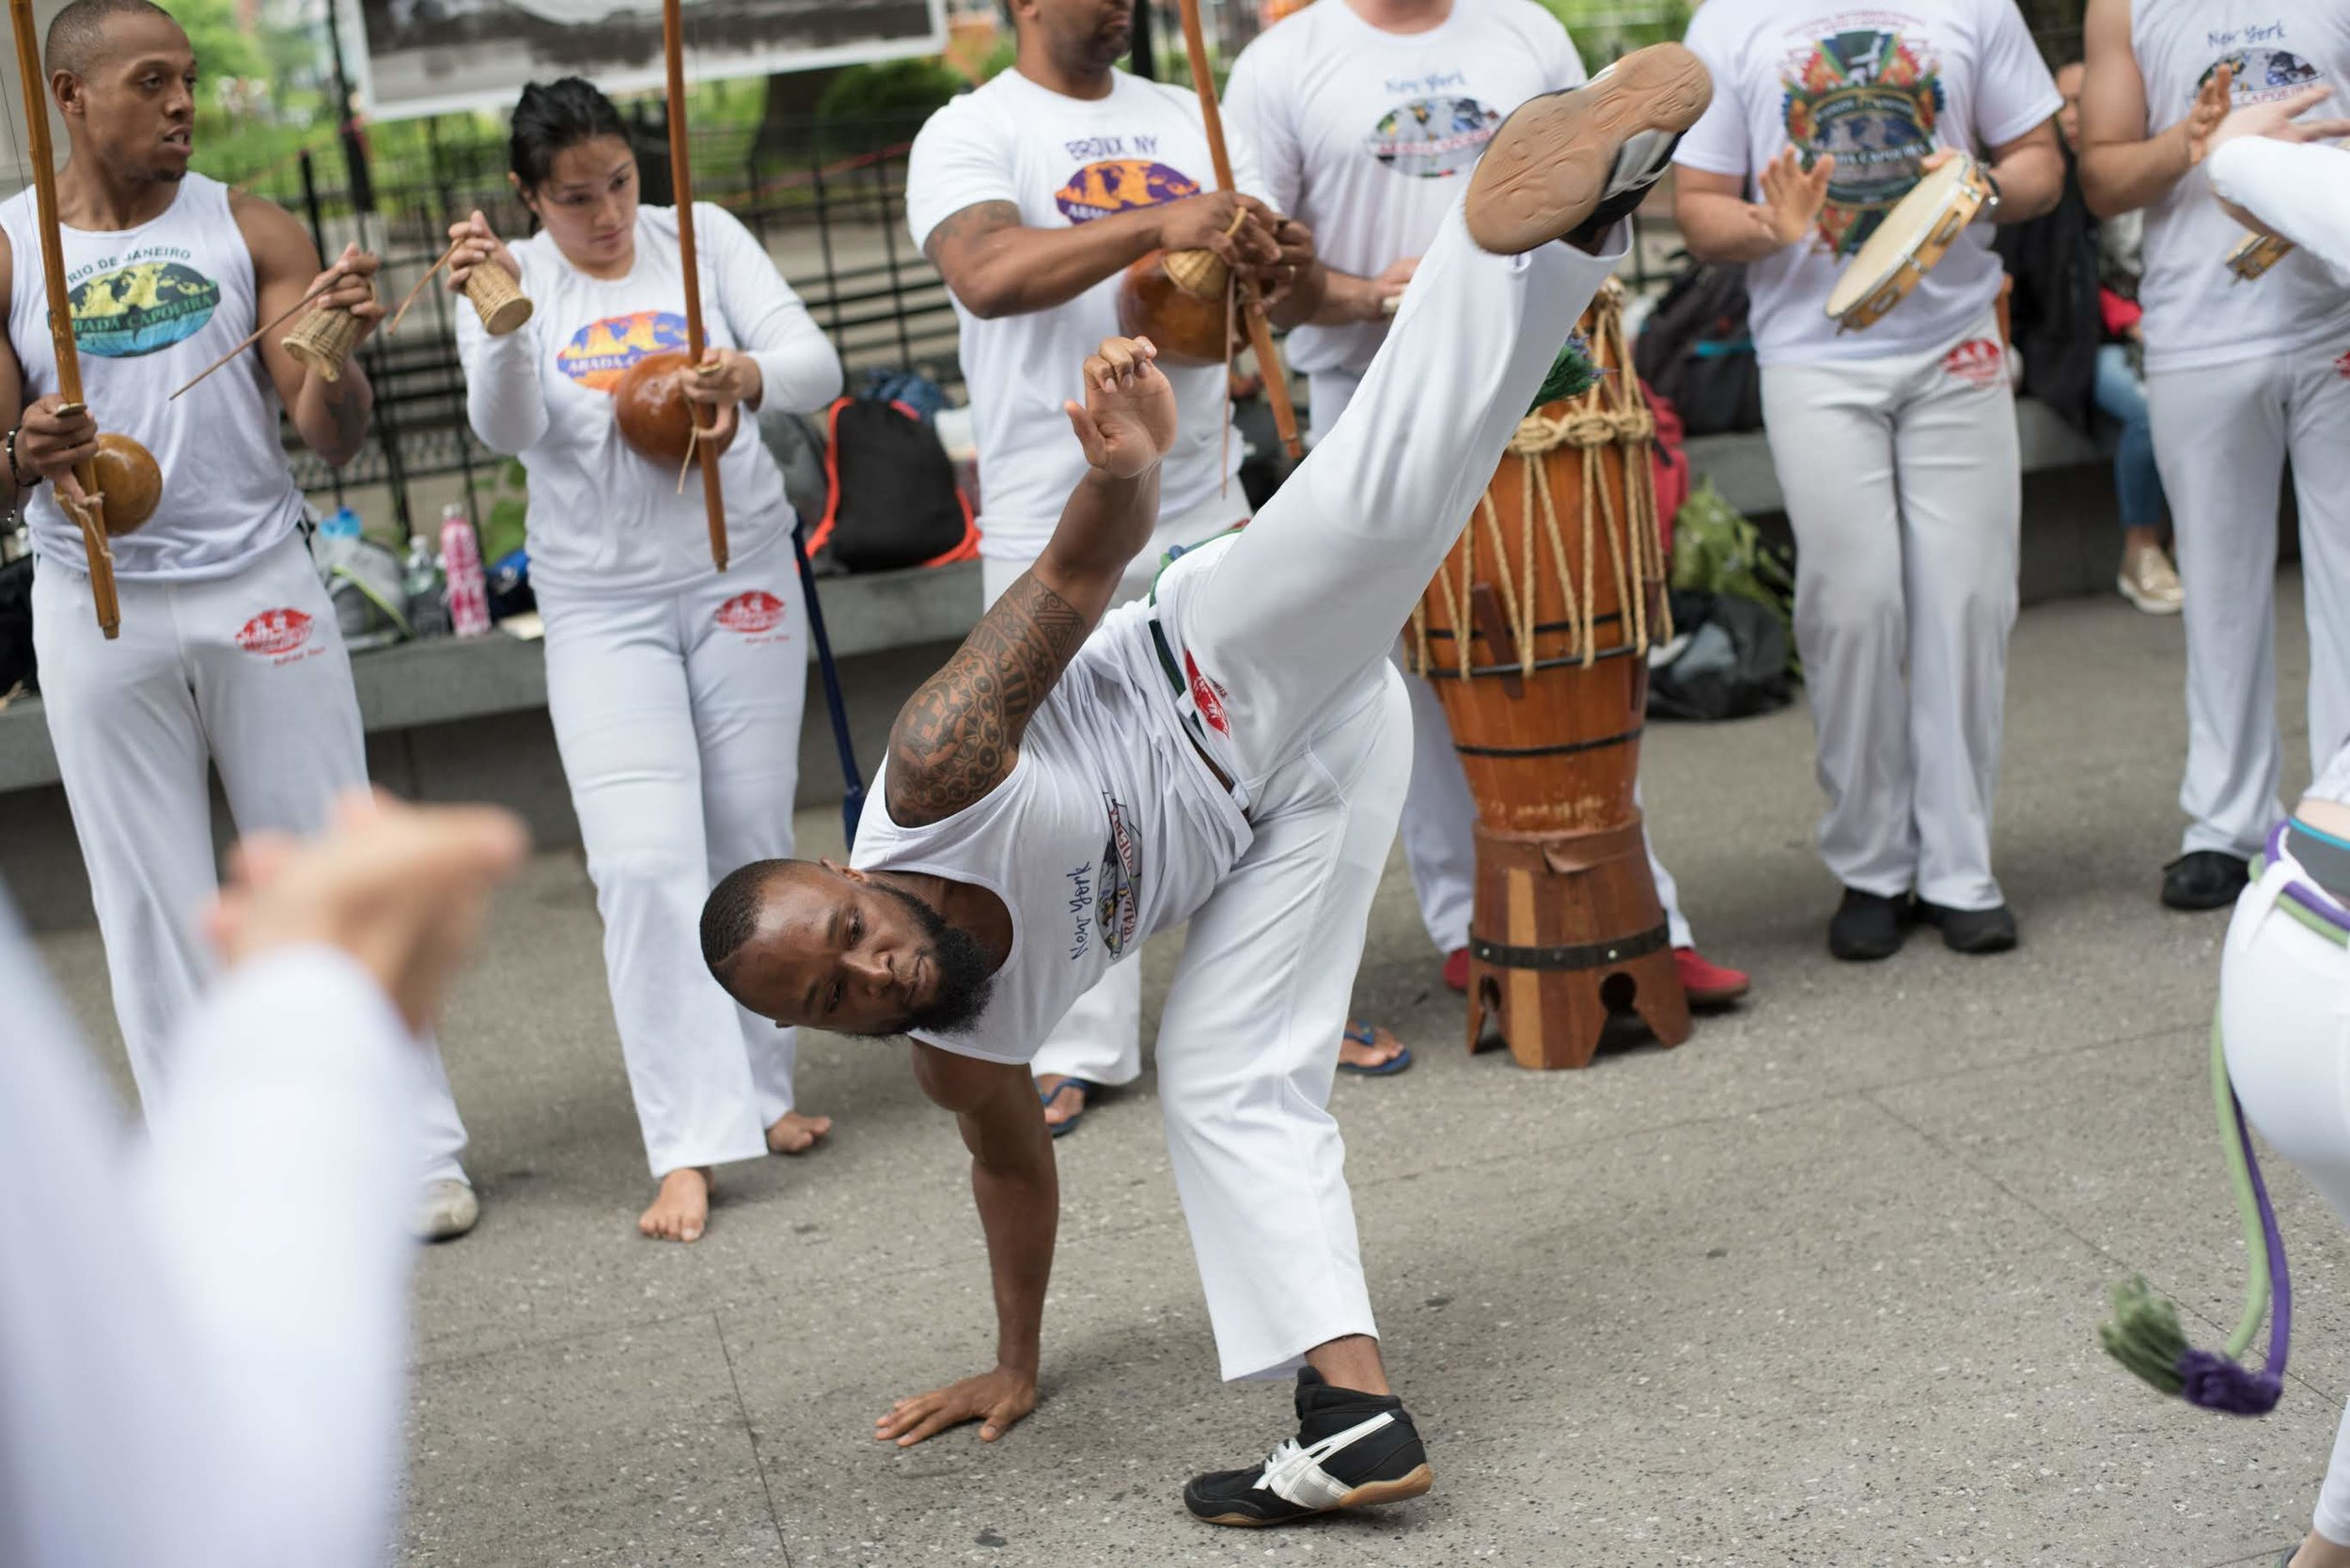 PLay Capoeira New York East harlem.jpg